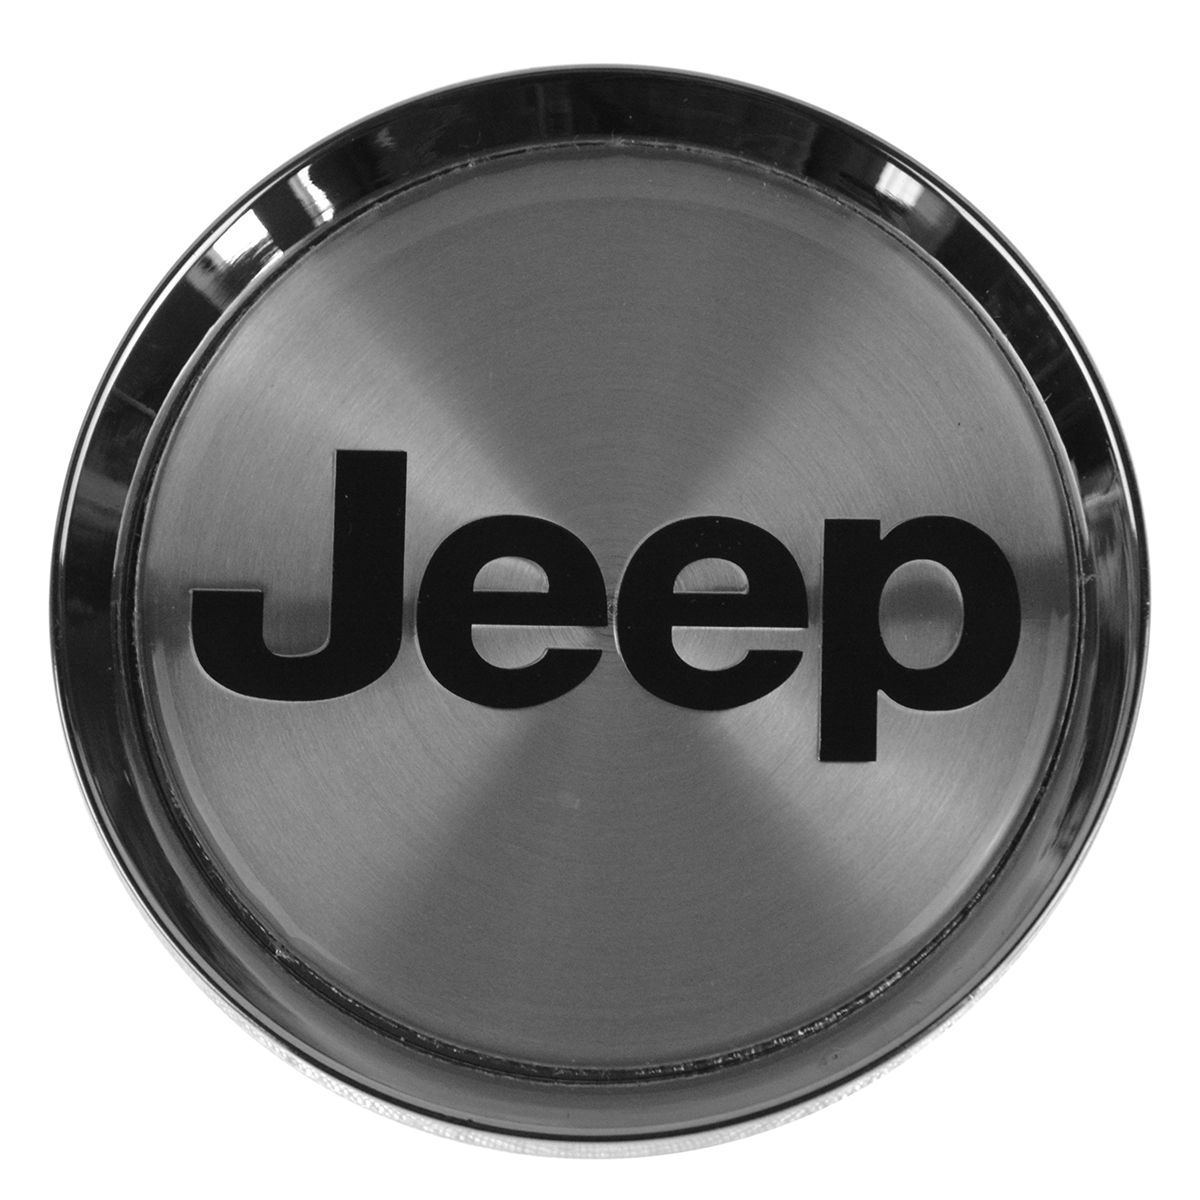 01-04 JEEP GRAND CHEROKEE CENTER CAP CHROME WITH BLACK JEEP LETTERING OEM MOPAR